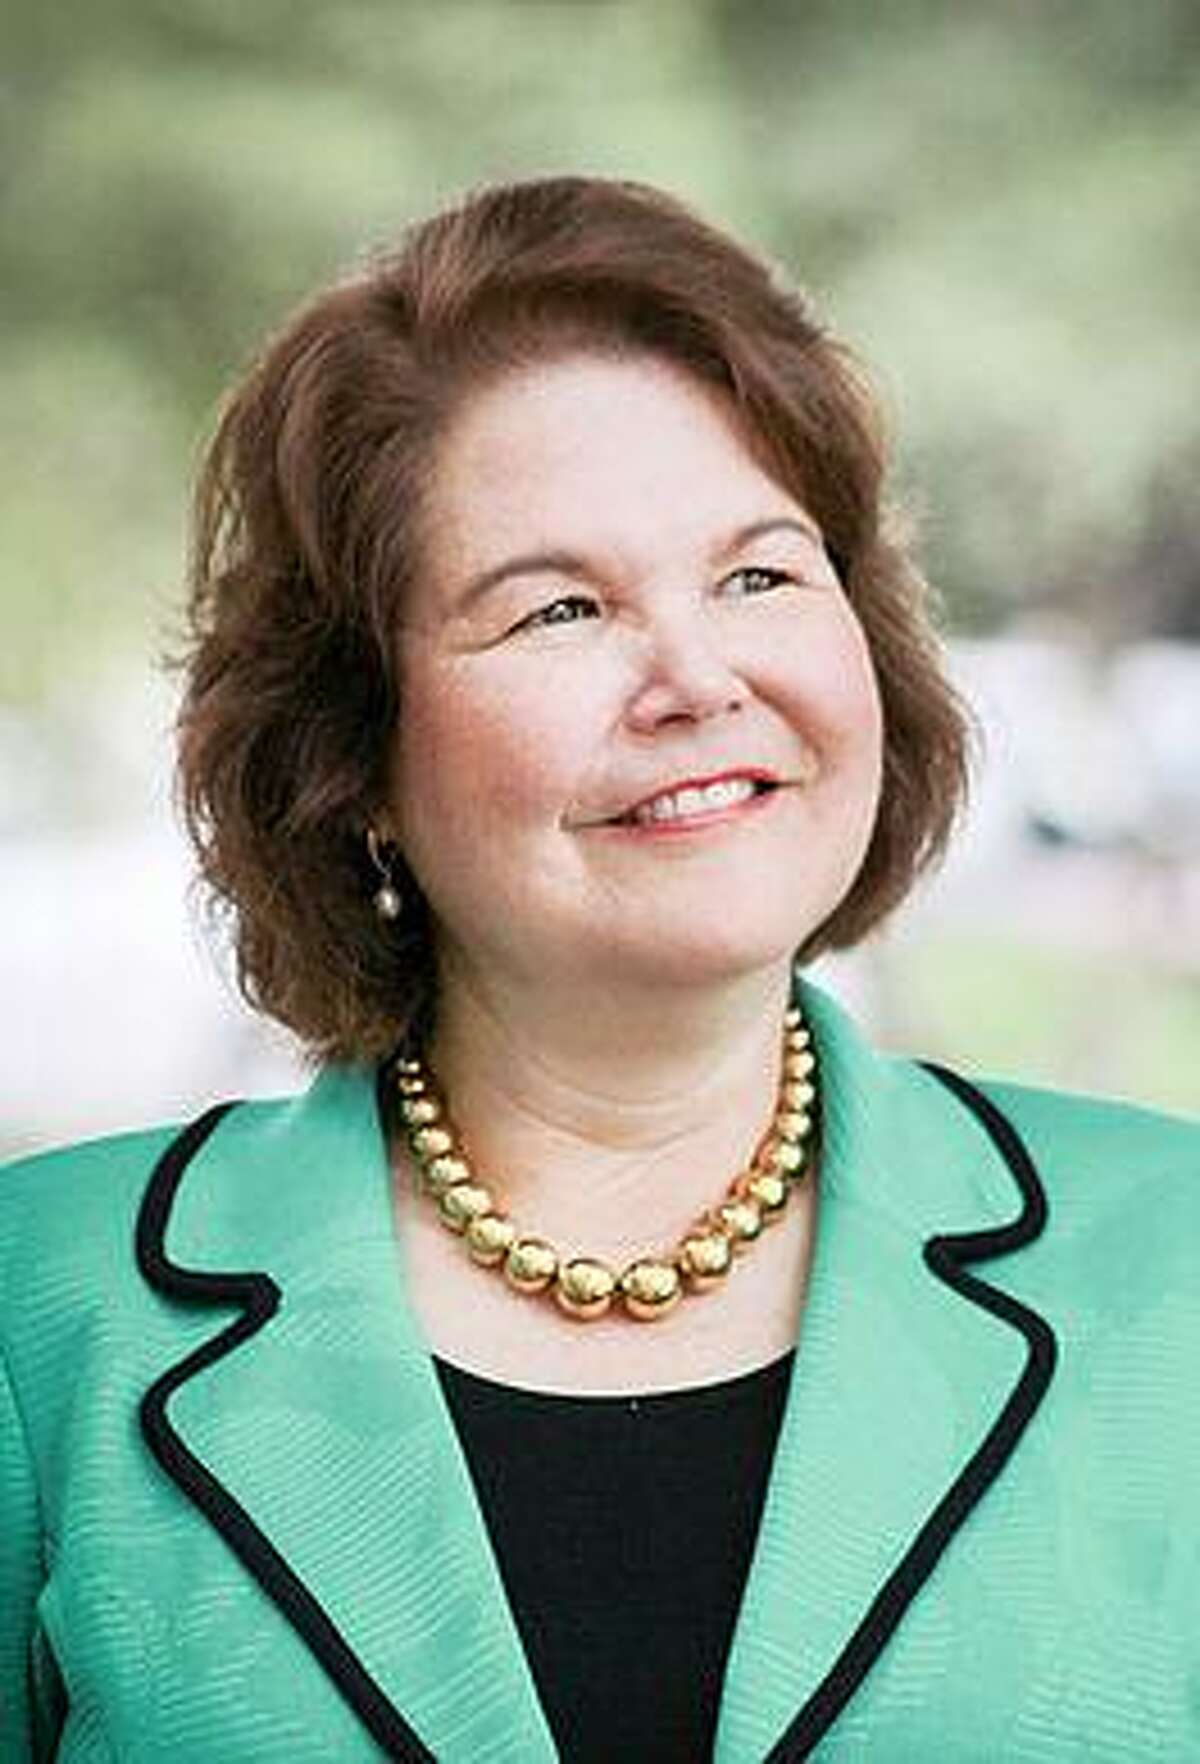 District 23 U.S. Congressional candidate Judy Canales.